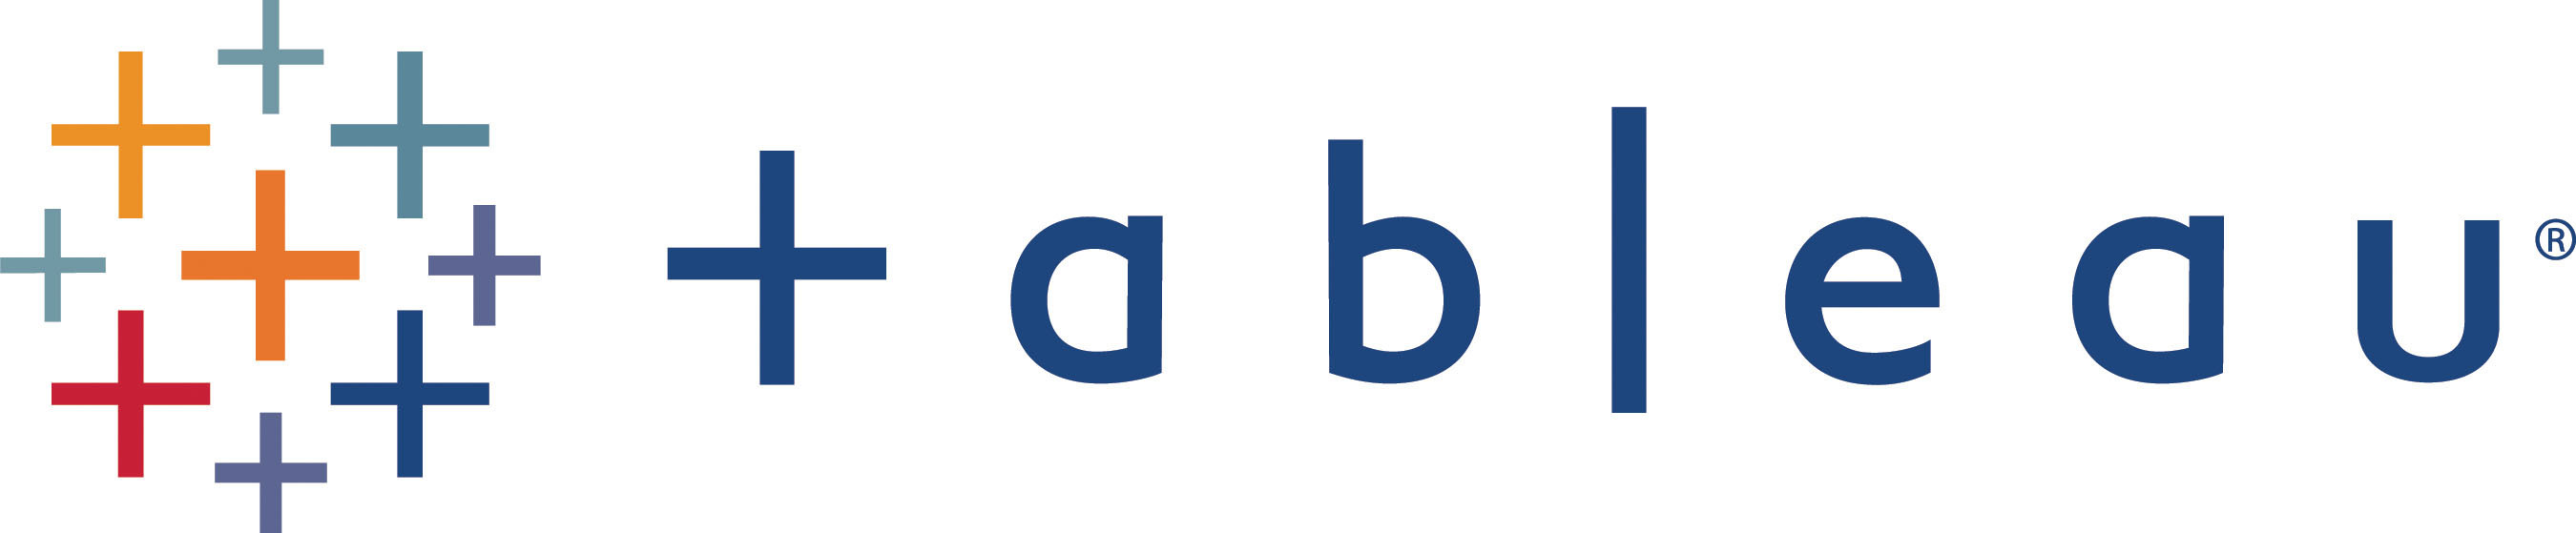 Tableau Software logo www.tableausoftware.com